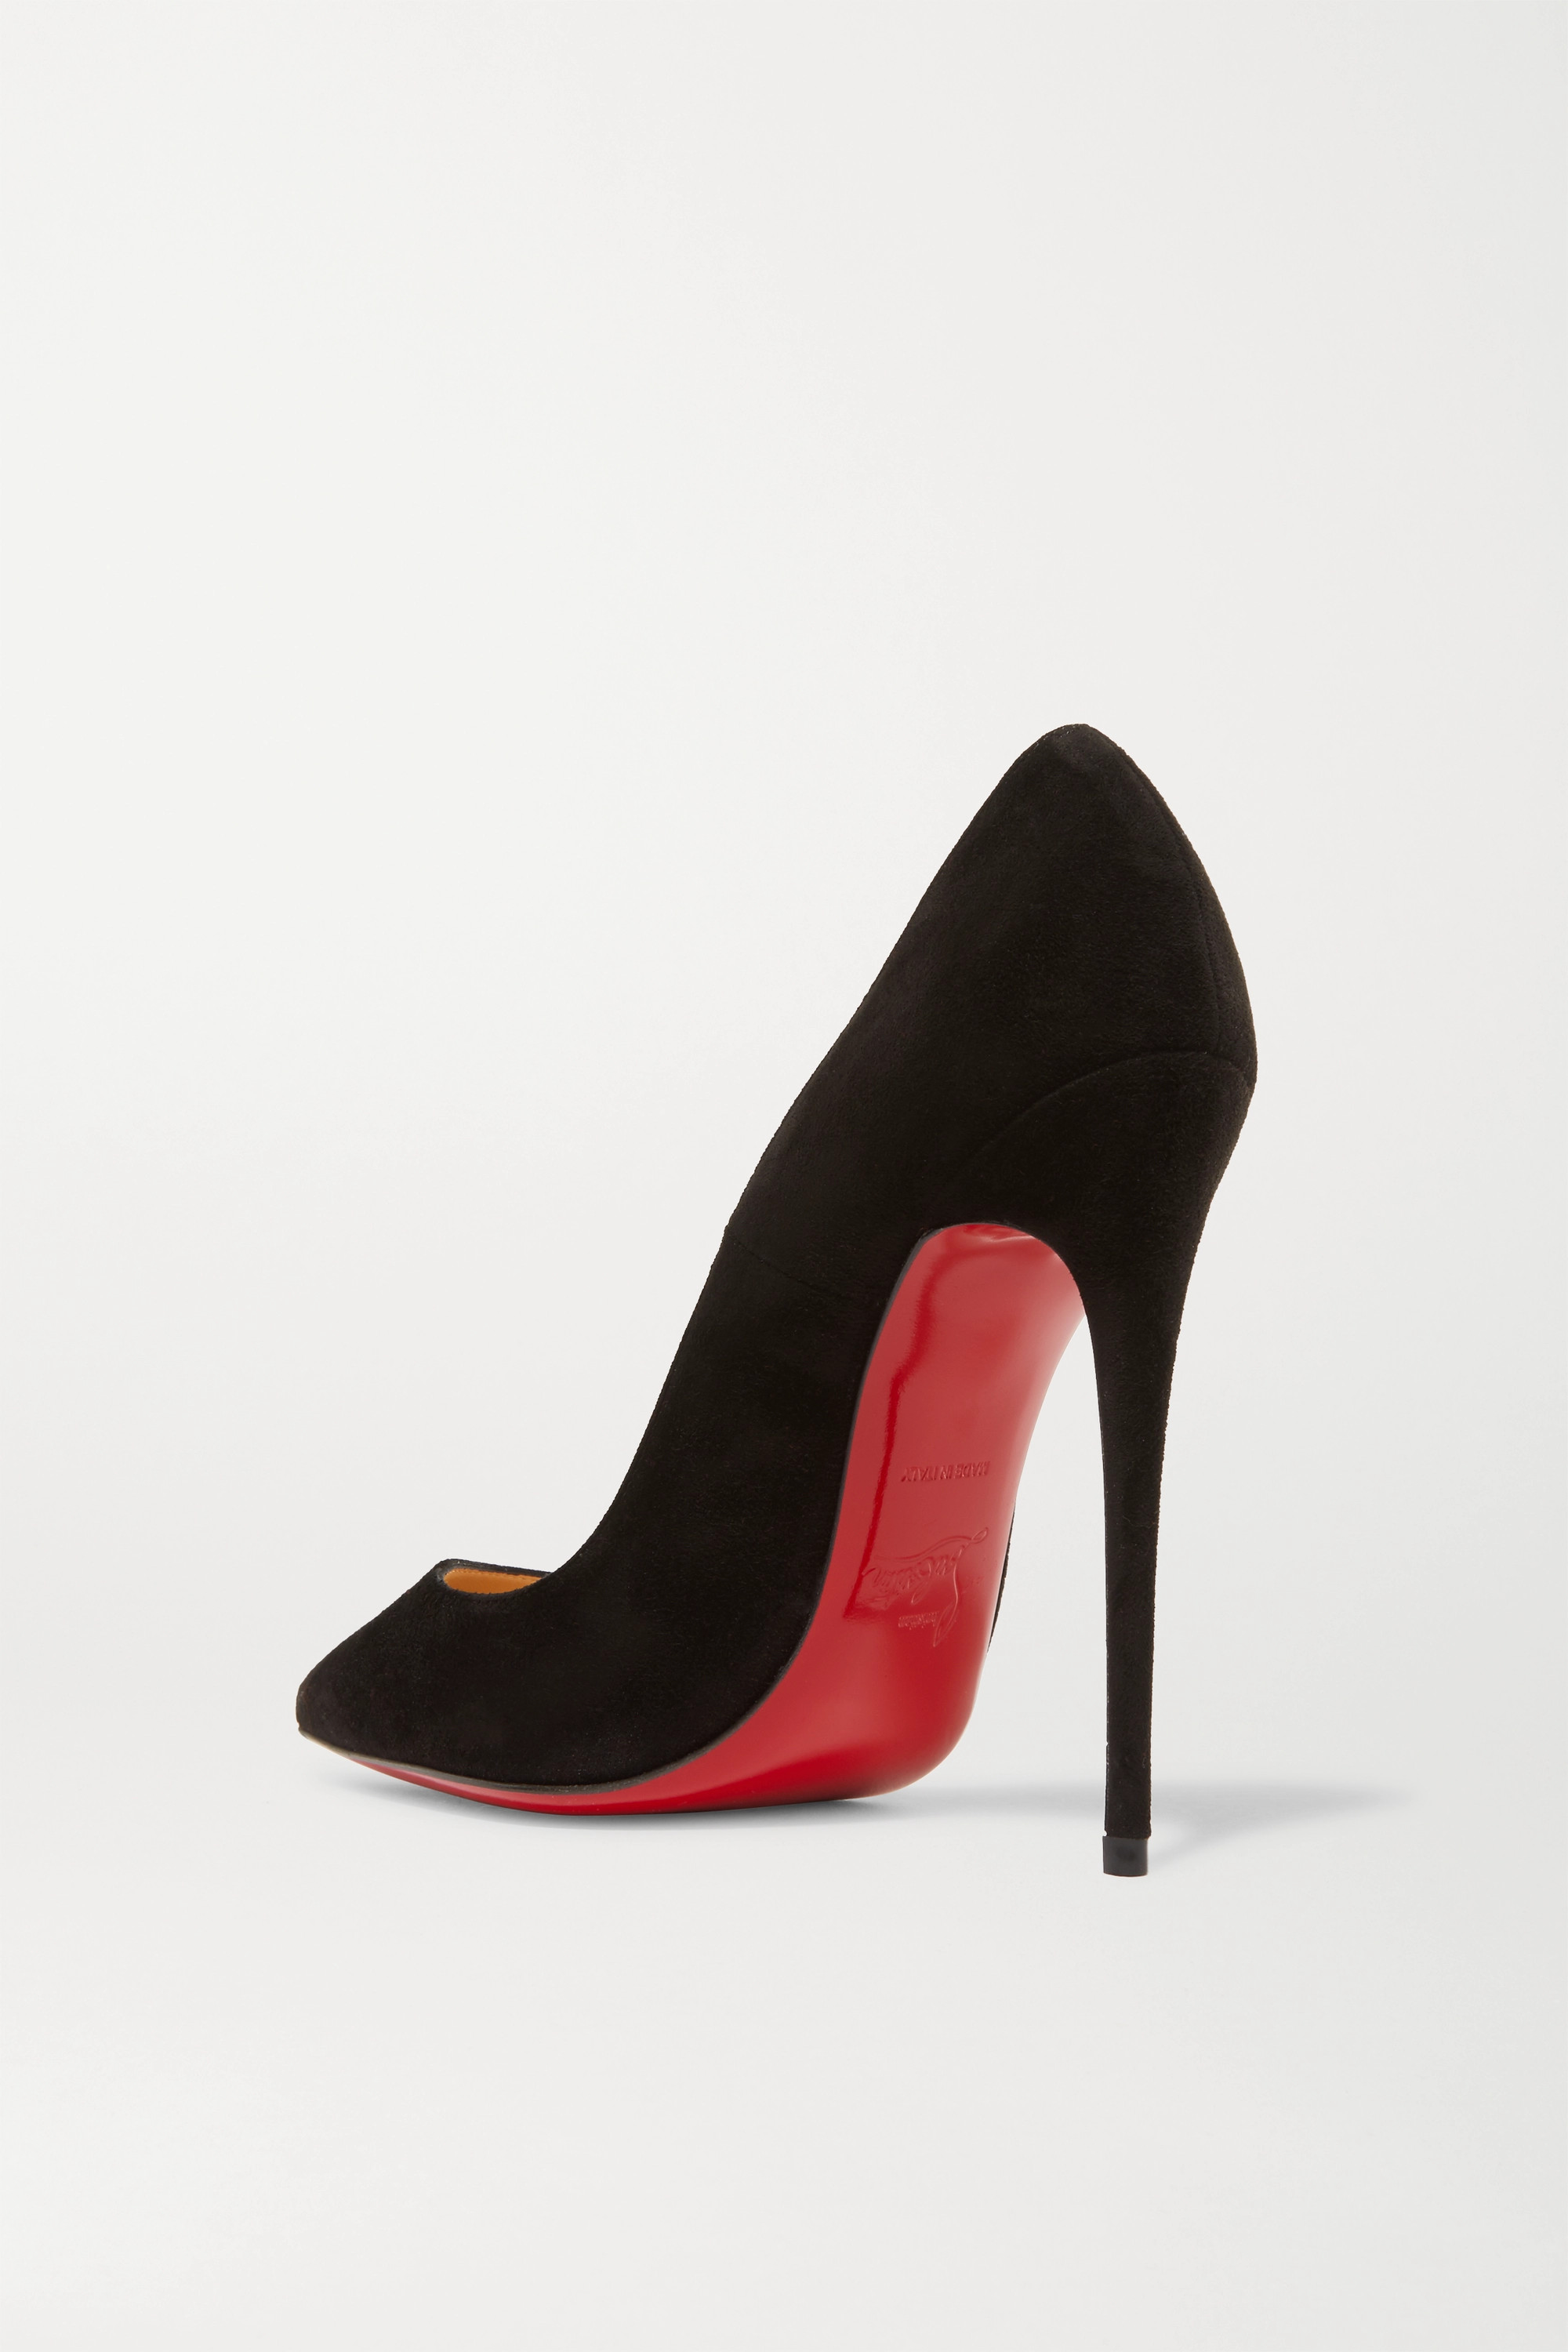 Christian Louboutin Escarpins en daim So Kate 120